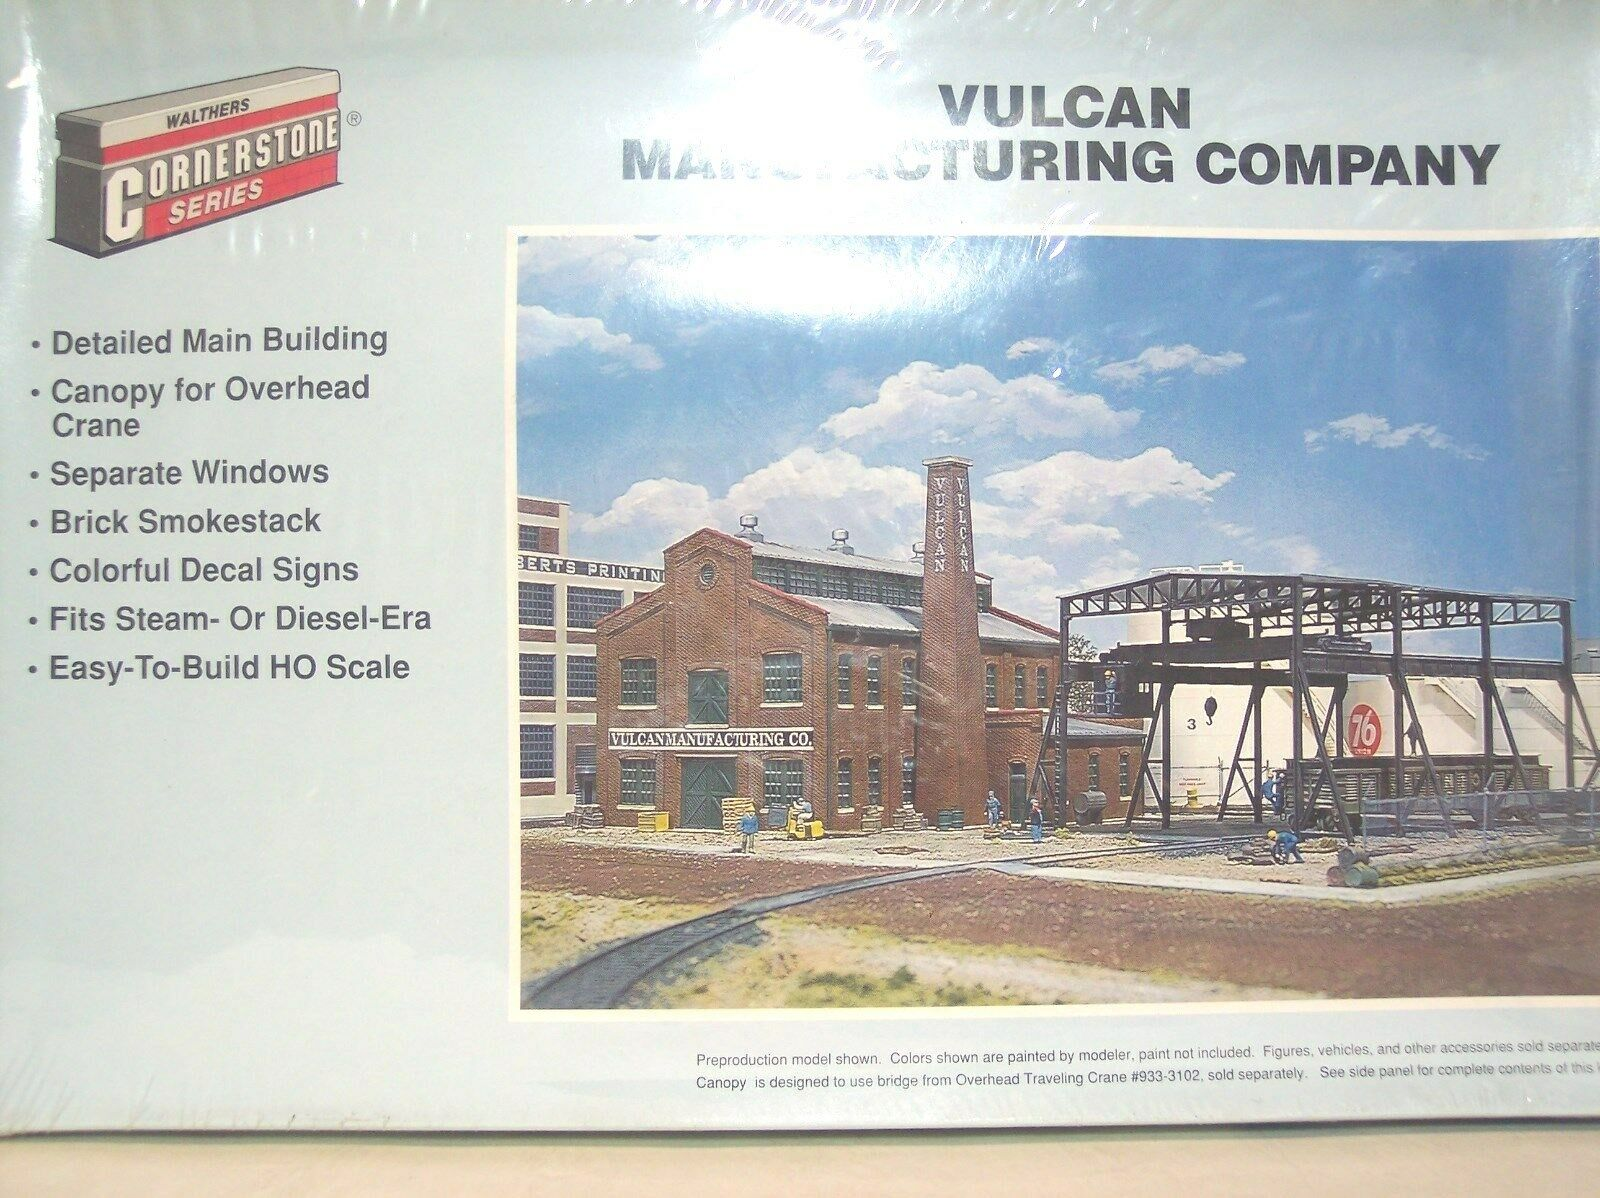 HO WALTHERS CORNERSTONE KIT VULCAN MANUFACTURING COMPANY BUILDING STILL SEALED